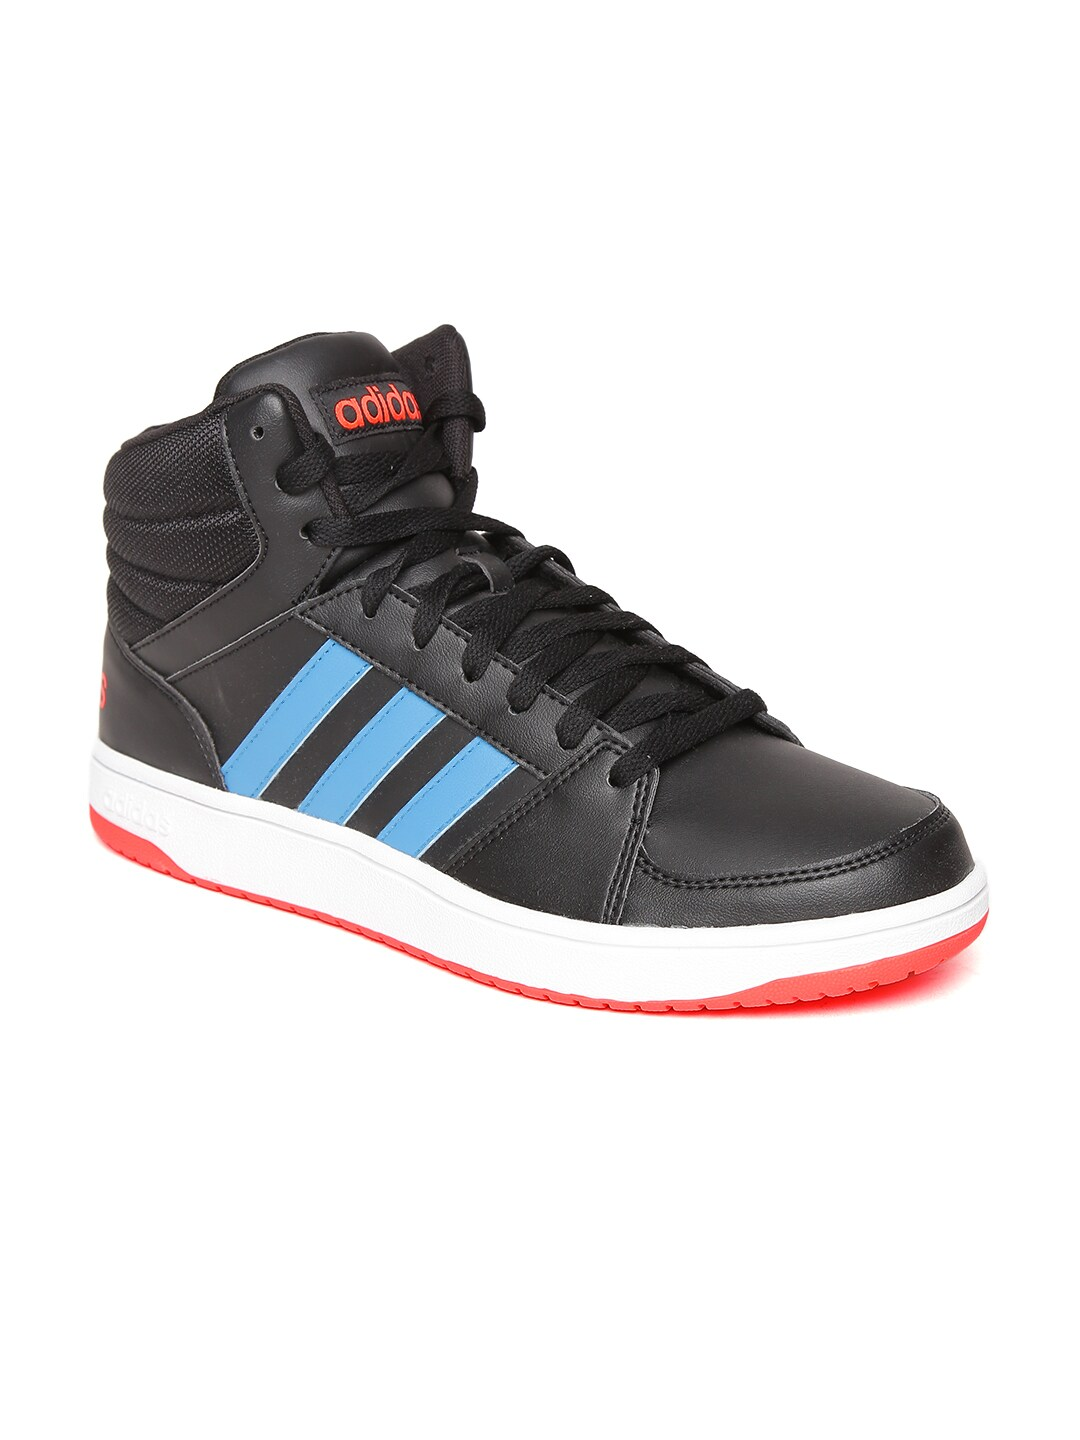 1a229550c690 Adidas aw4587 Neo Men Black Hoops Vs Solid Mid Top Sneakers- Price in India